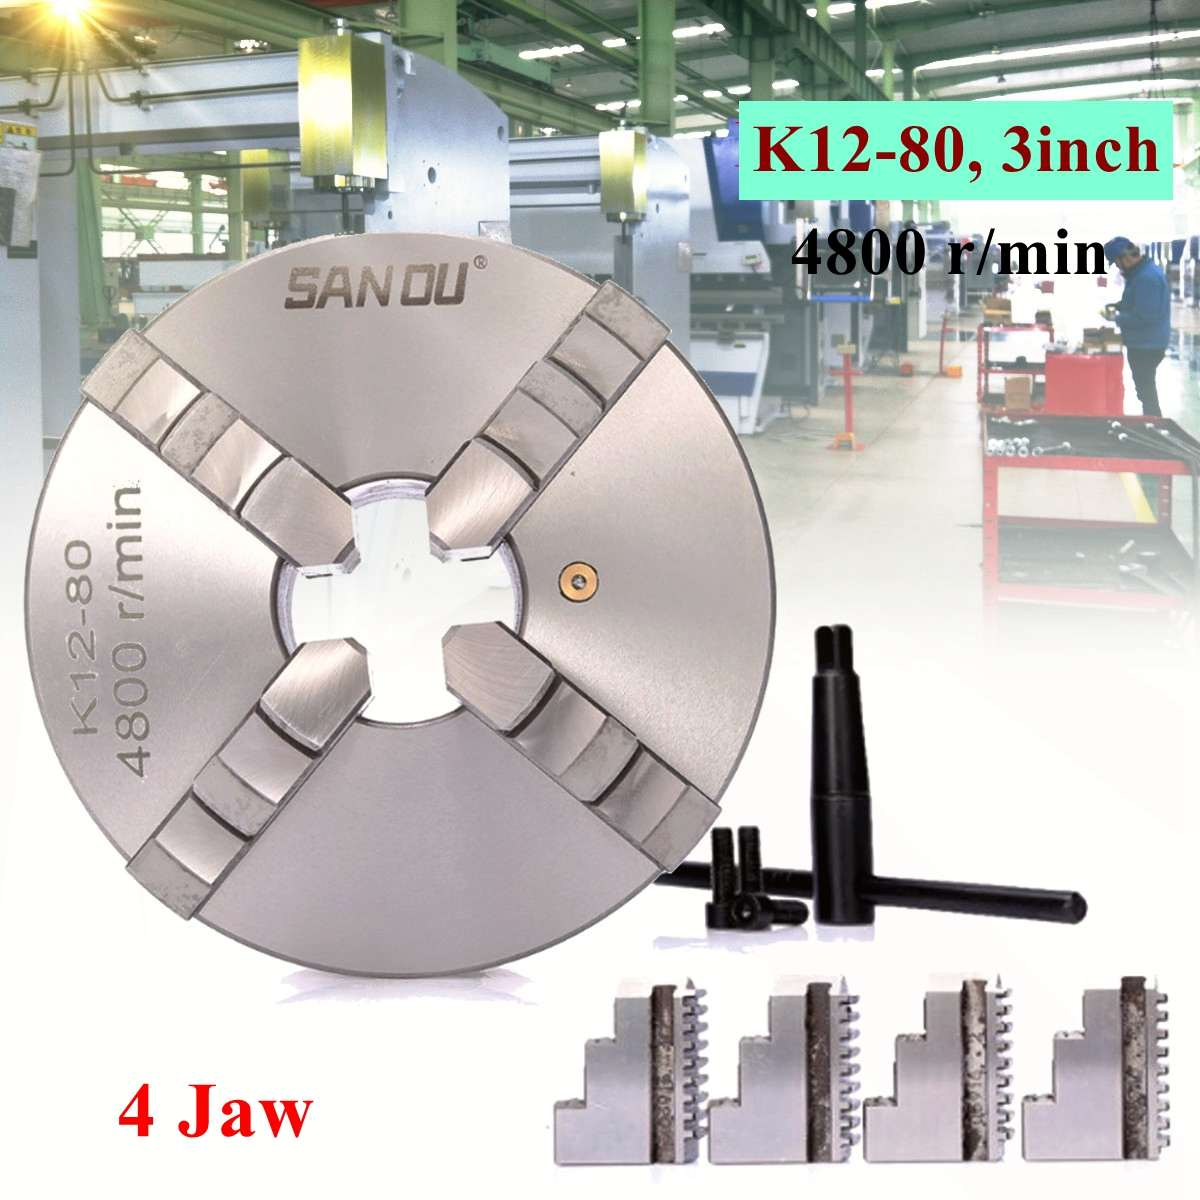 4 Jaw K12-80 Lathe Chuck 3 Self Centering Hardened Steel Reversible Jaw 80mm Lathe Tools for Drilling Milling Machine4 Jaw K12-80 Lathe Chuck 3 Self Centering Hardened Steel Reversible Jaw 80mm Lathe Tools for Drilling Milling Machine